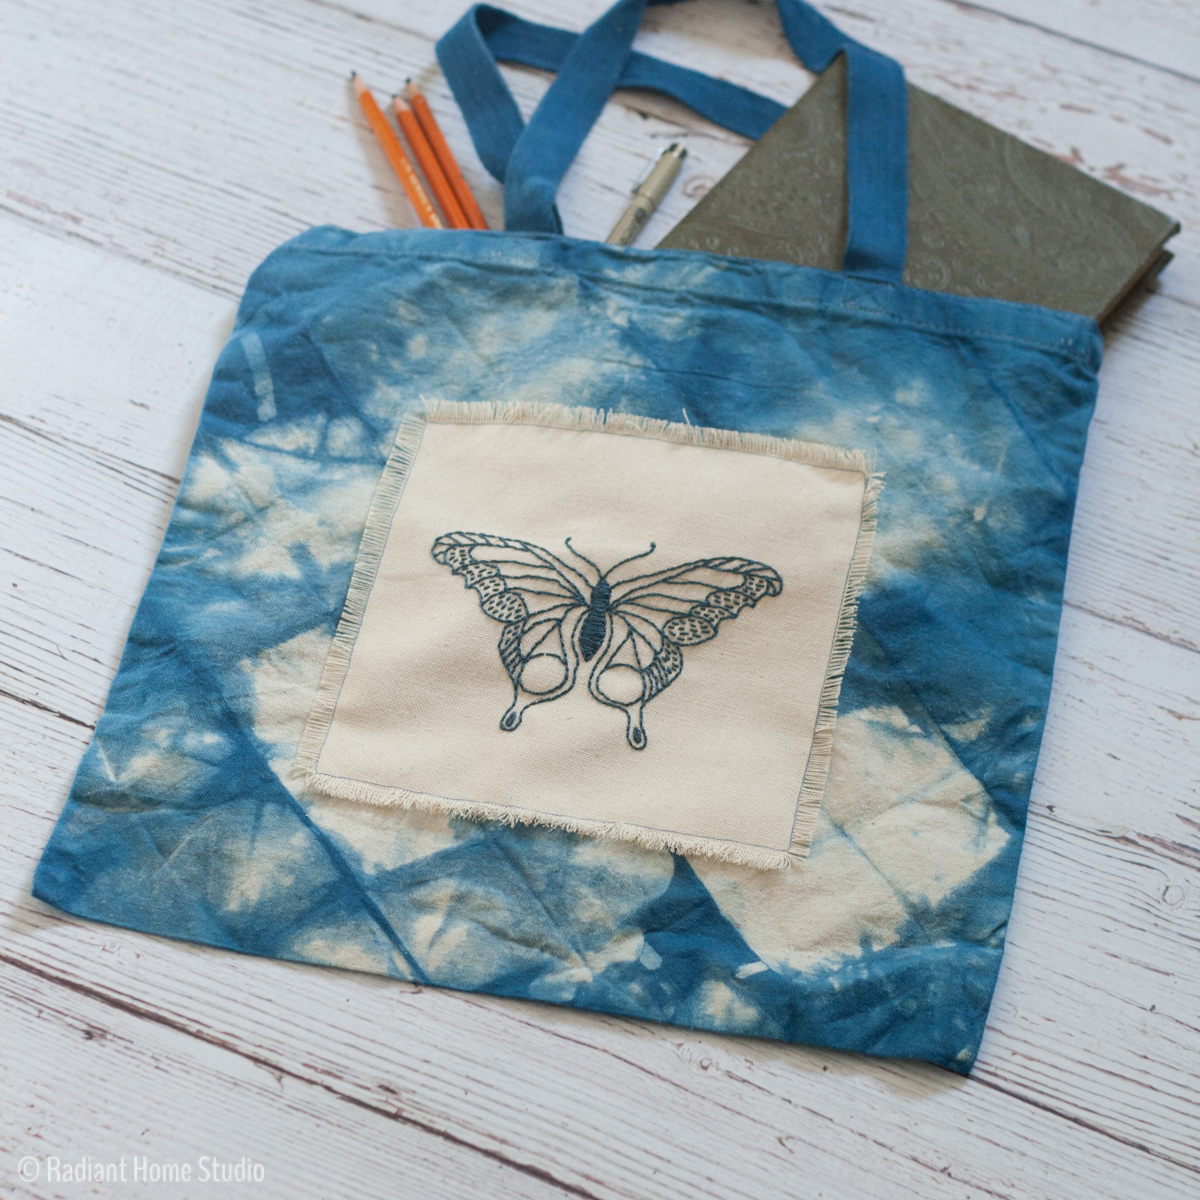 Indigo Embroidered Tote Bag | Butterfly Pattern from I Heart Stitch Art | Radiant Home Studio